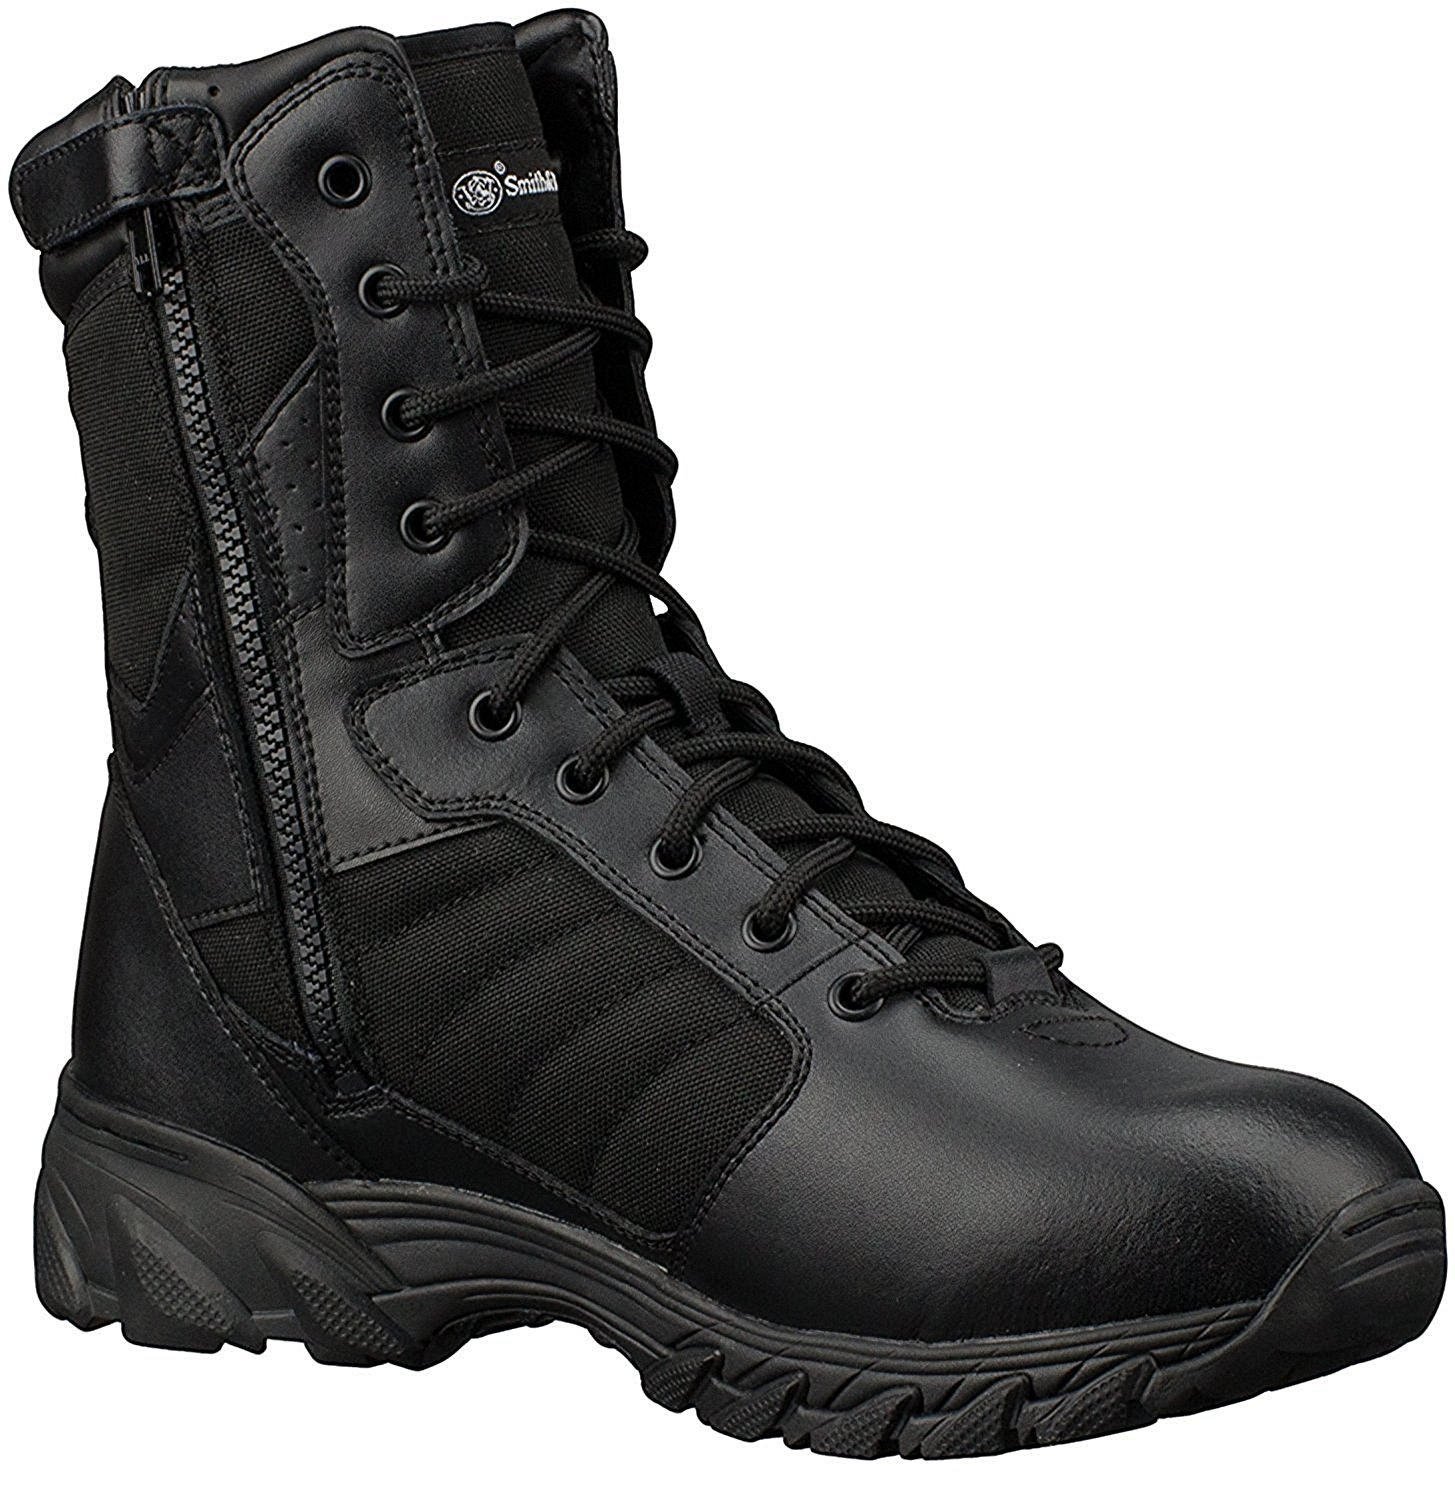 Smith & Wesson Footwear Men's Breach 2.0 Tactical Size Zip Boots, Black, 9